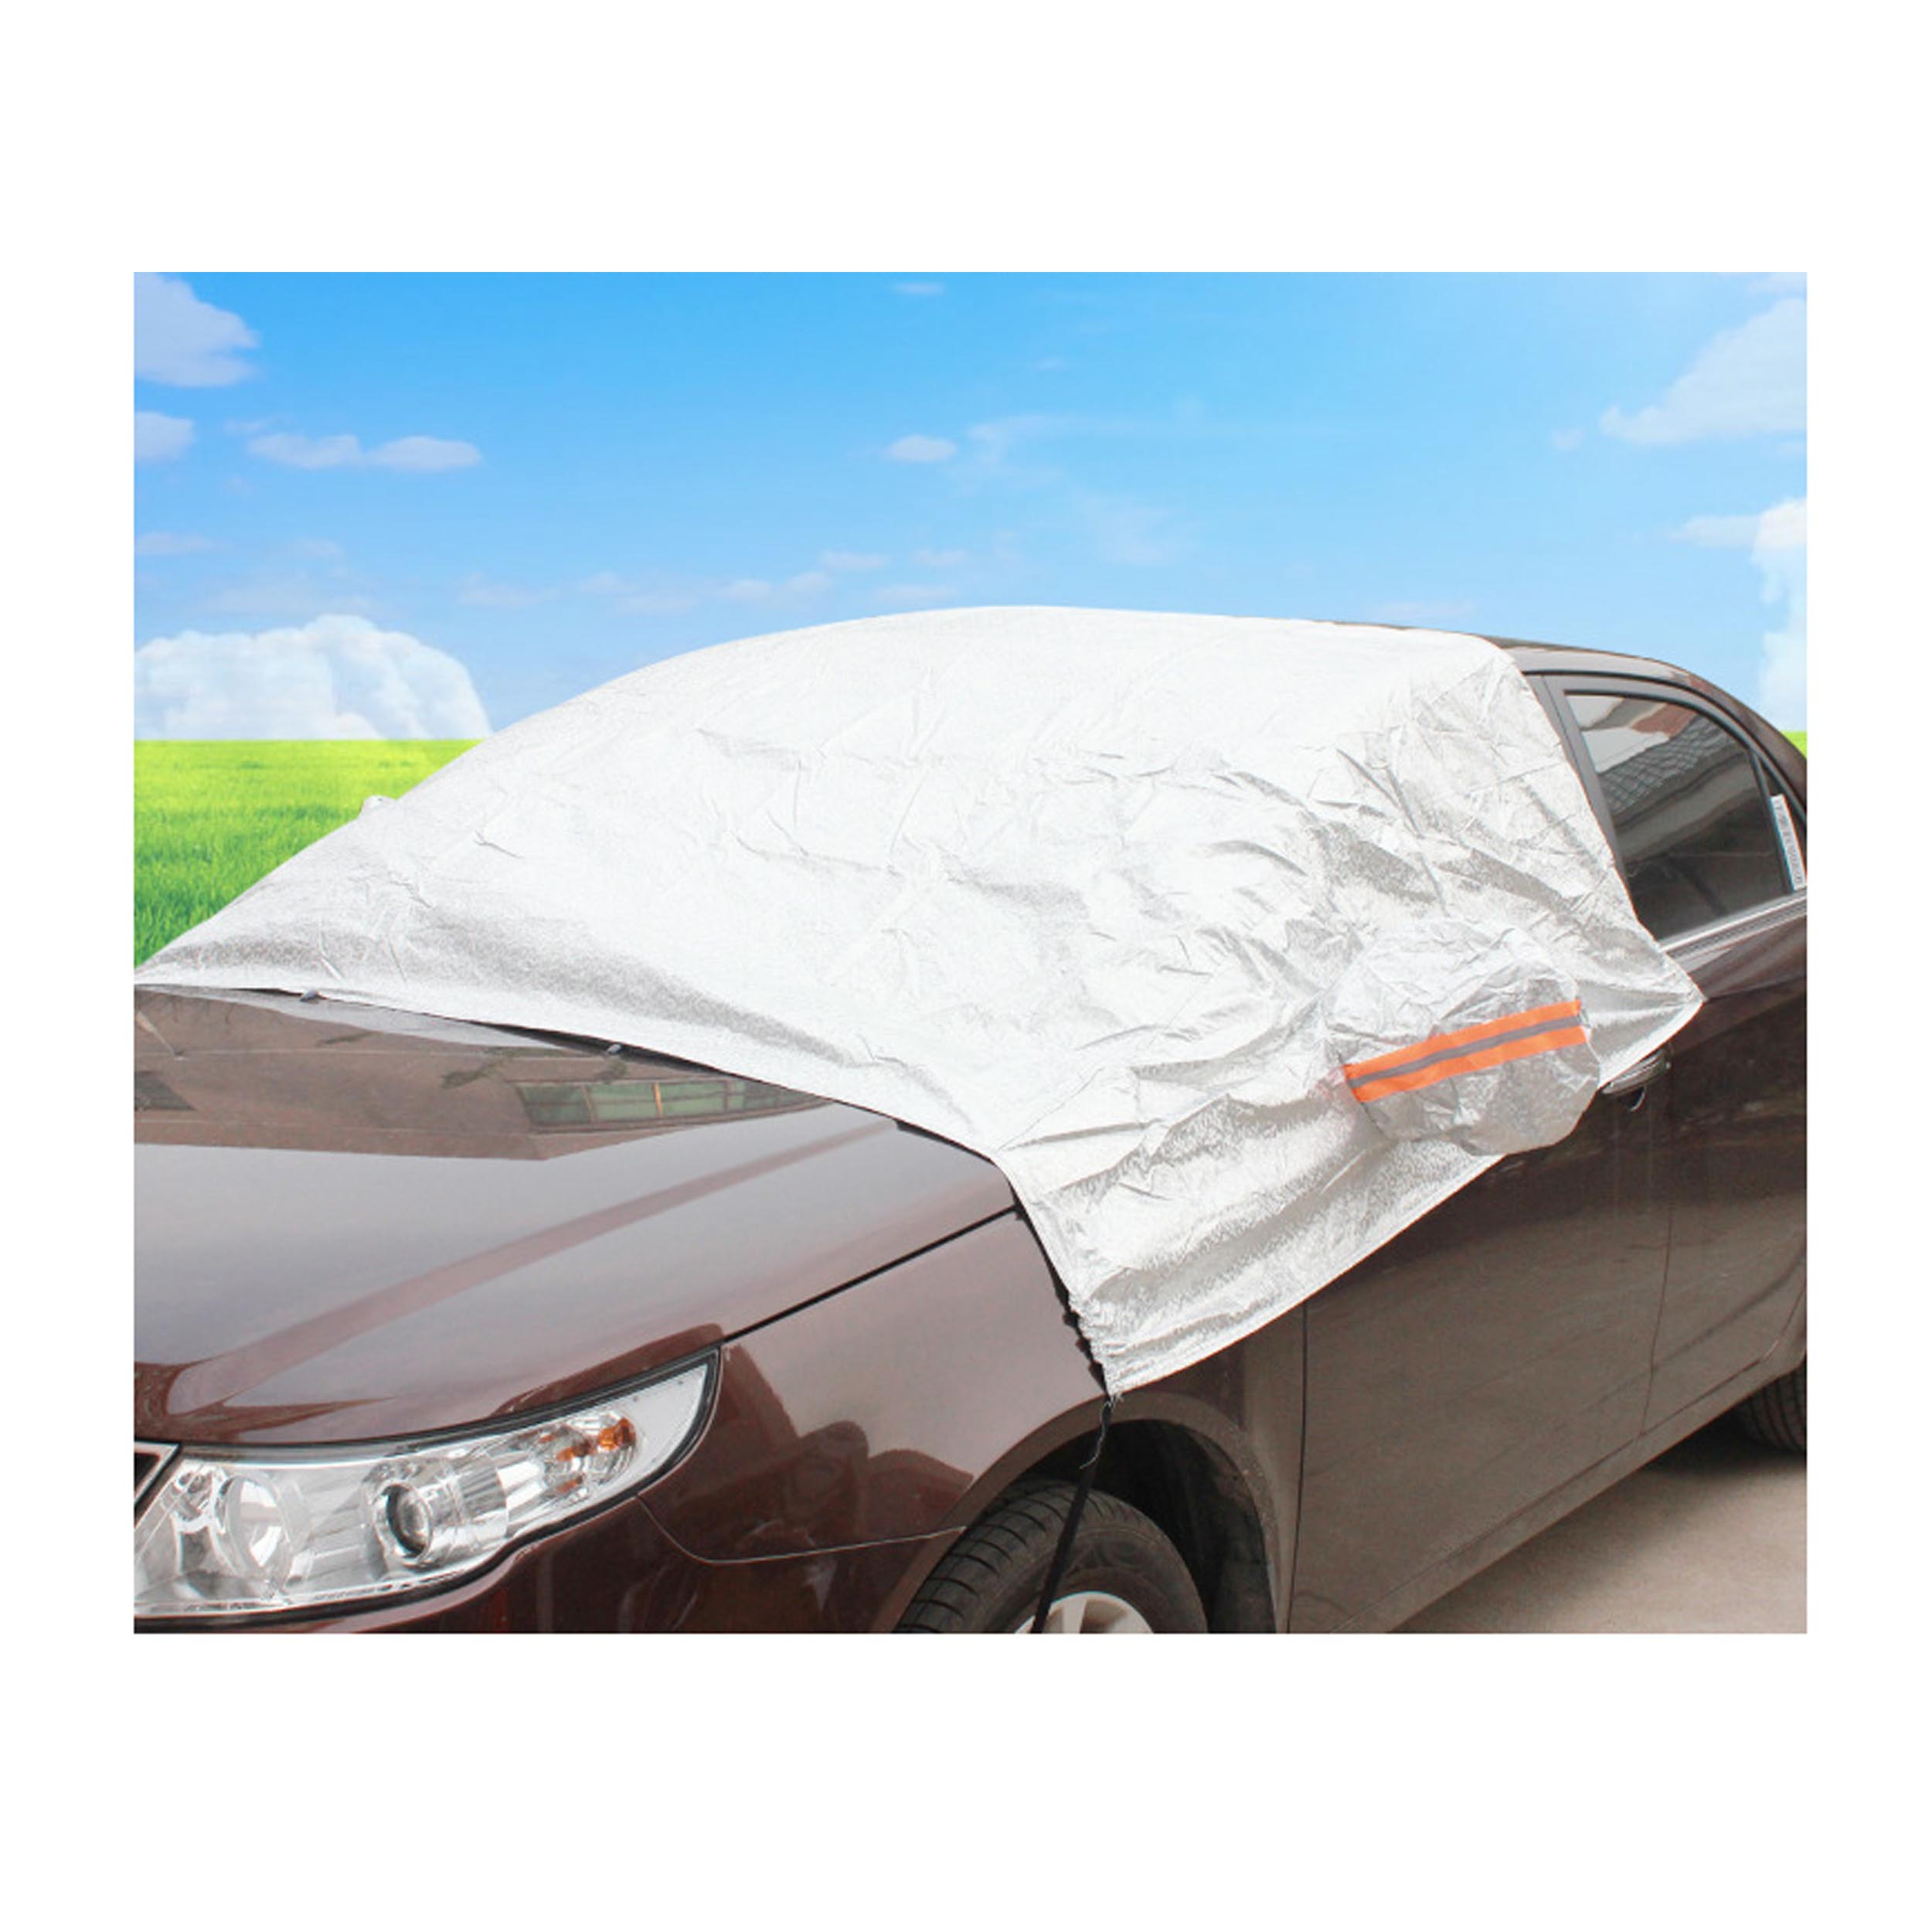 XXL Universal All-Weather Snow, Rain, Dust Proof Protection SUV Car Windshield / Window / Roof Cover